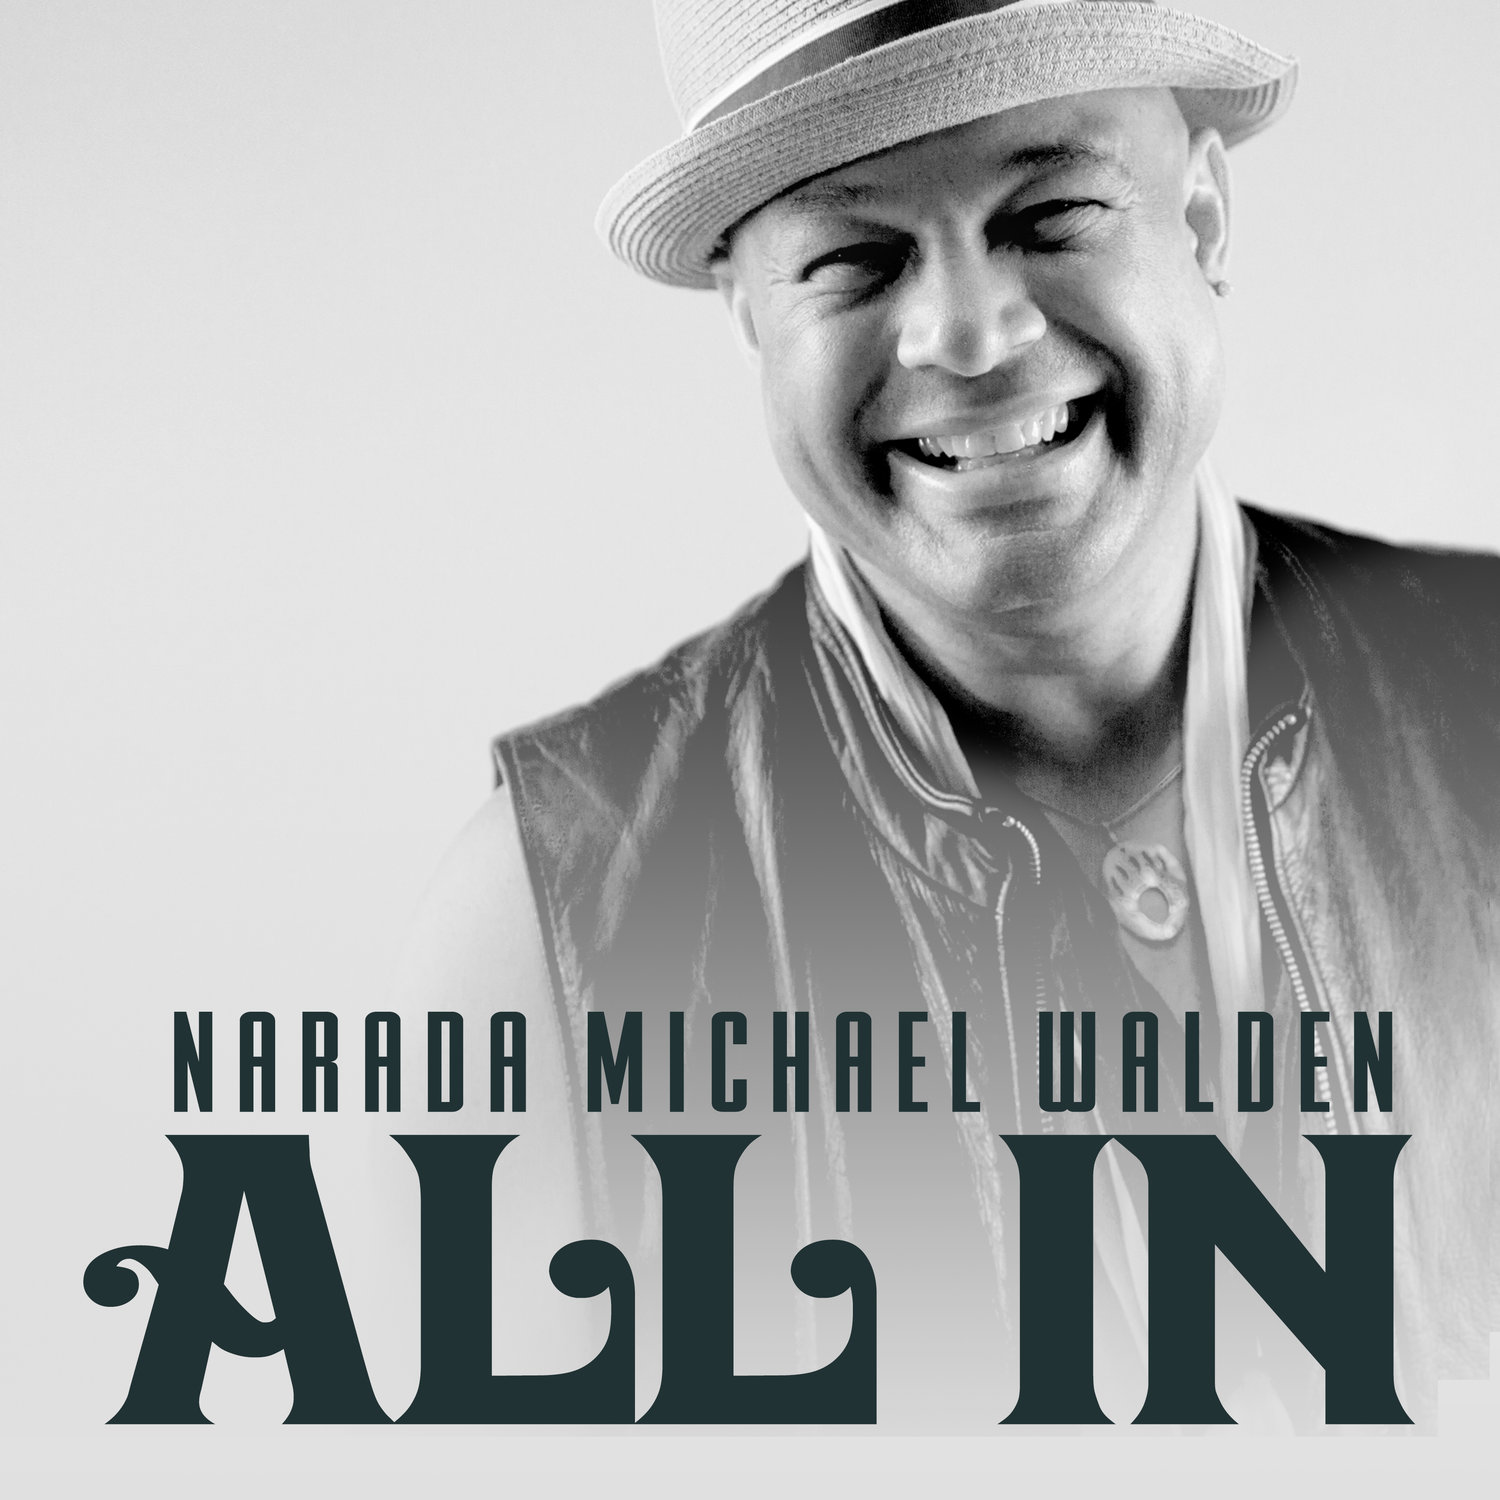 NMW ALL IN Podcast Episode 008- Neal Schon